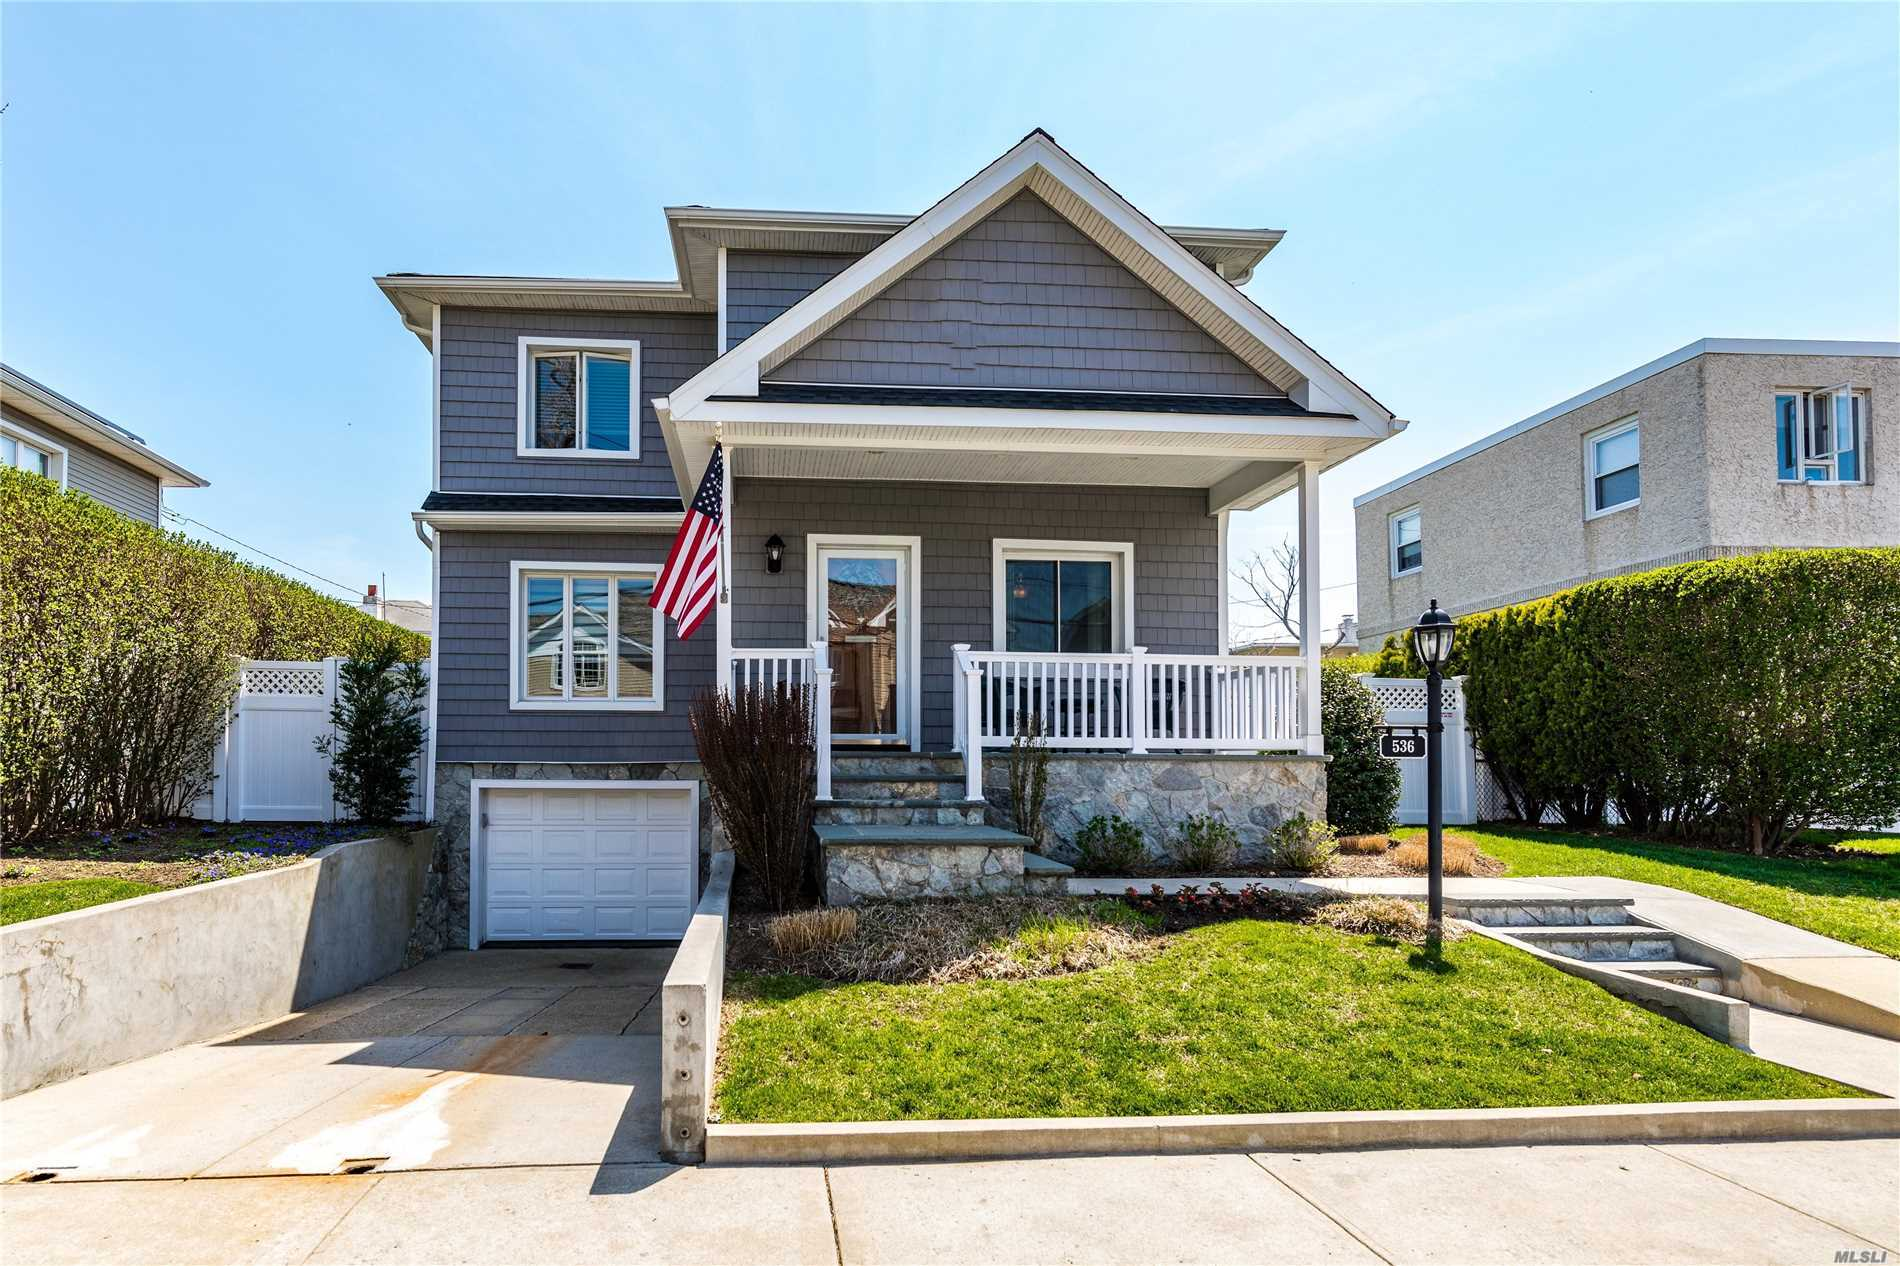 536 E Bay Dr - Long Beach, New York